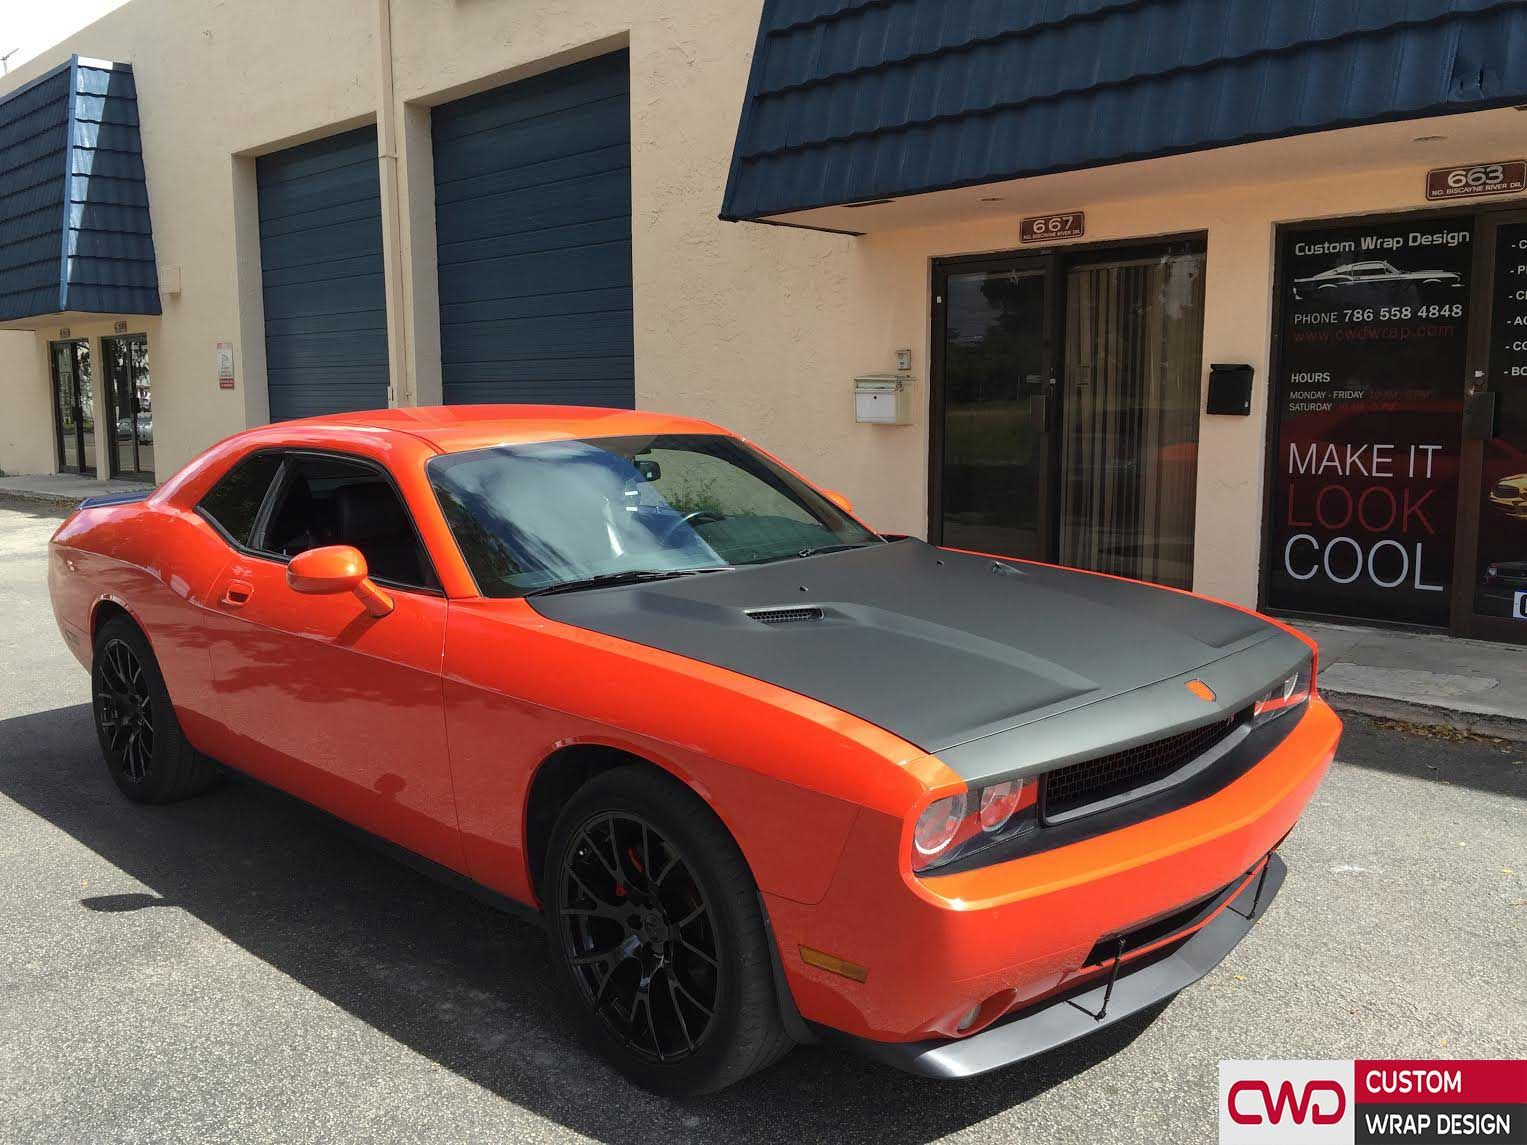 Dodge Challenger Hood Wrap In Matte Black And Smoked Taillight Book